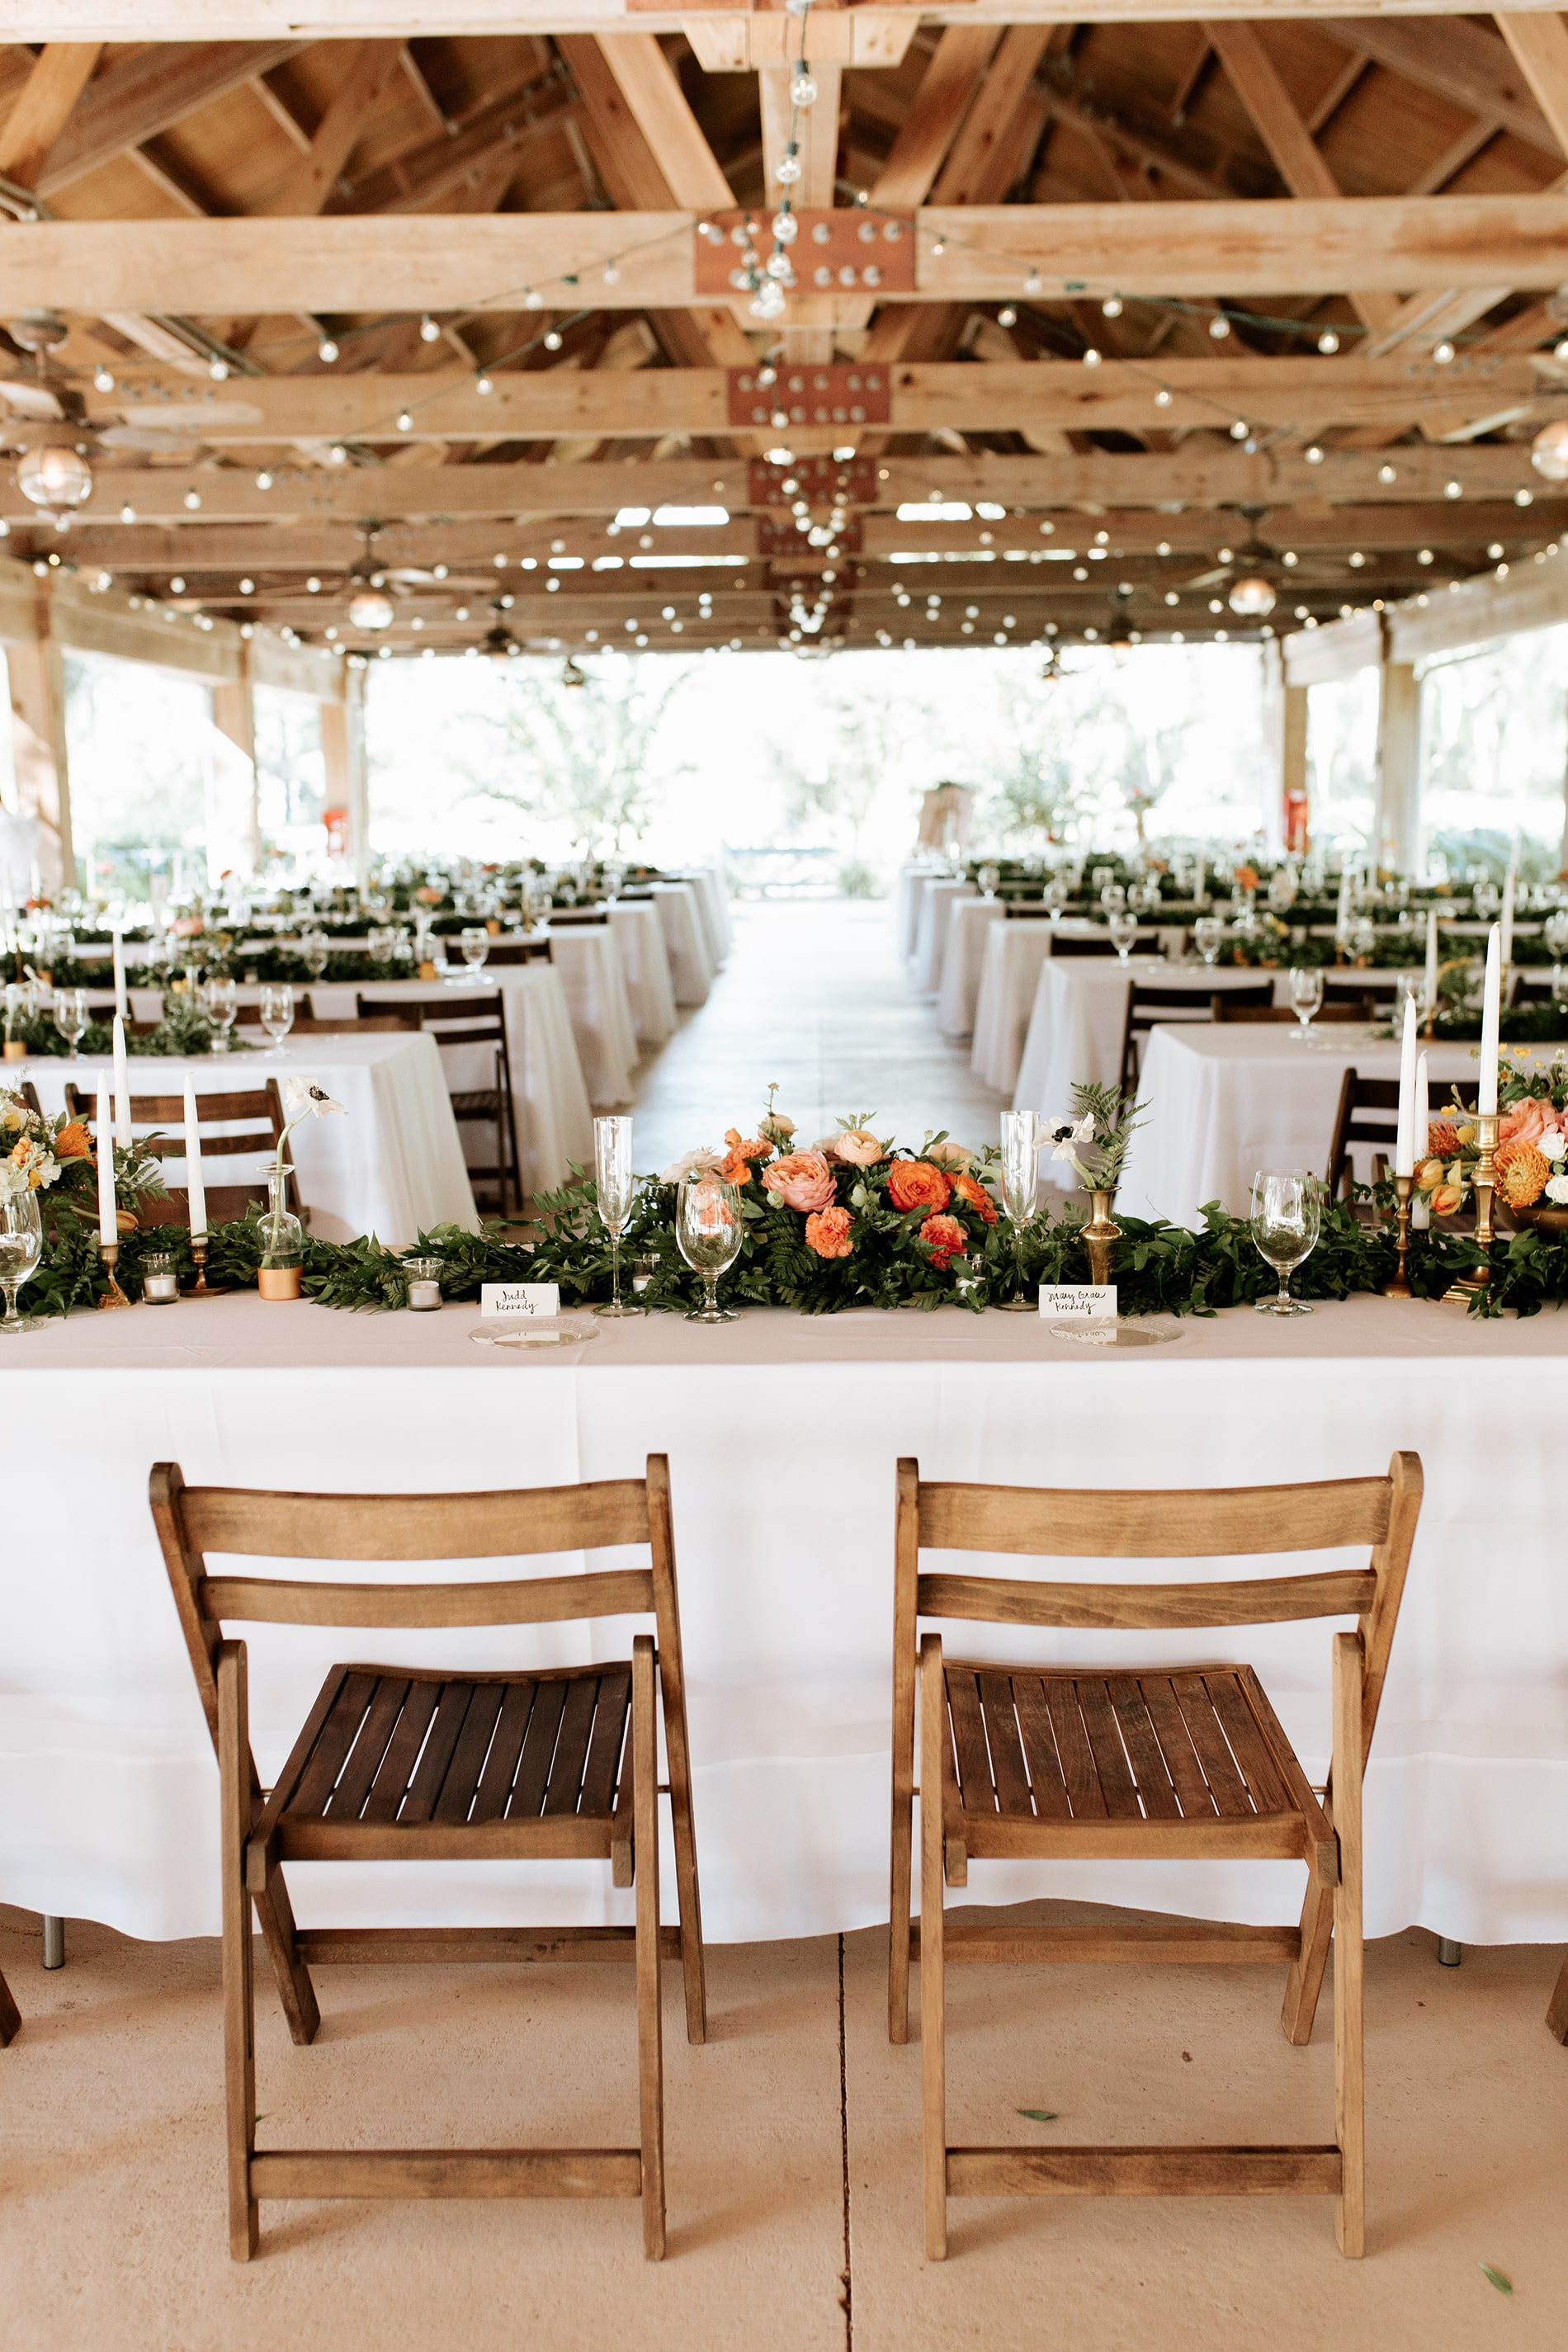 lowcountry-kitchen-catering-beaufort-sc-mary-grace-and-judd-kennedy-wedding-ceremony-tables-chairs-min.jpg